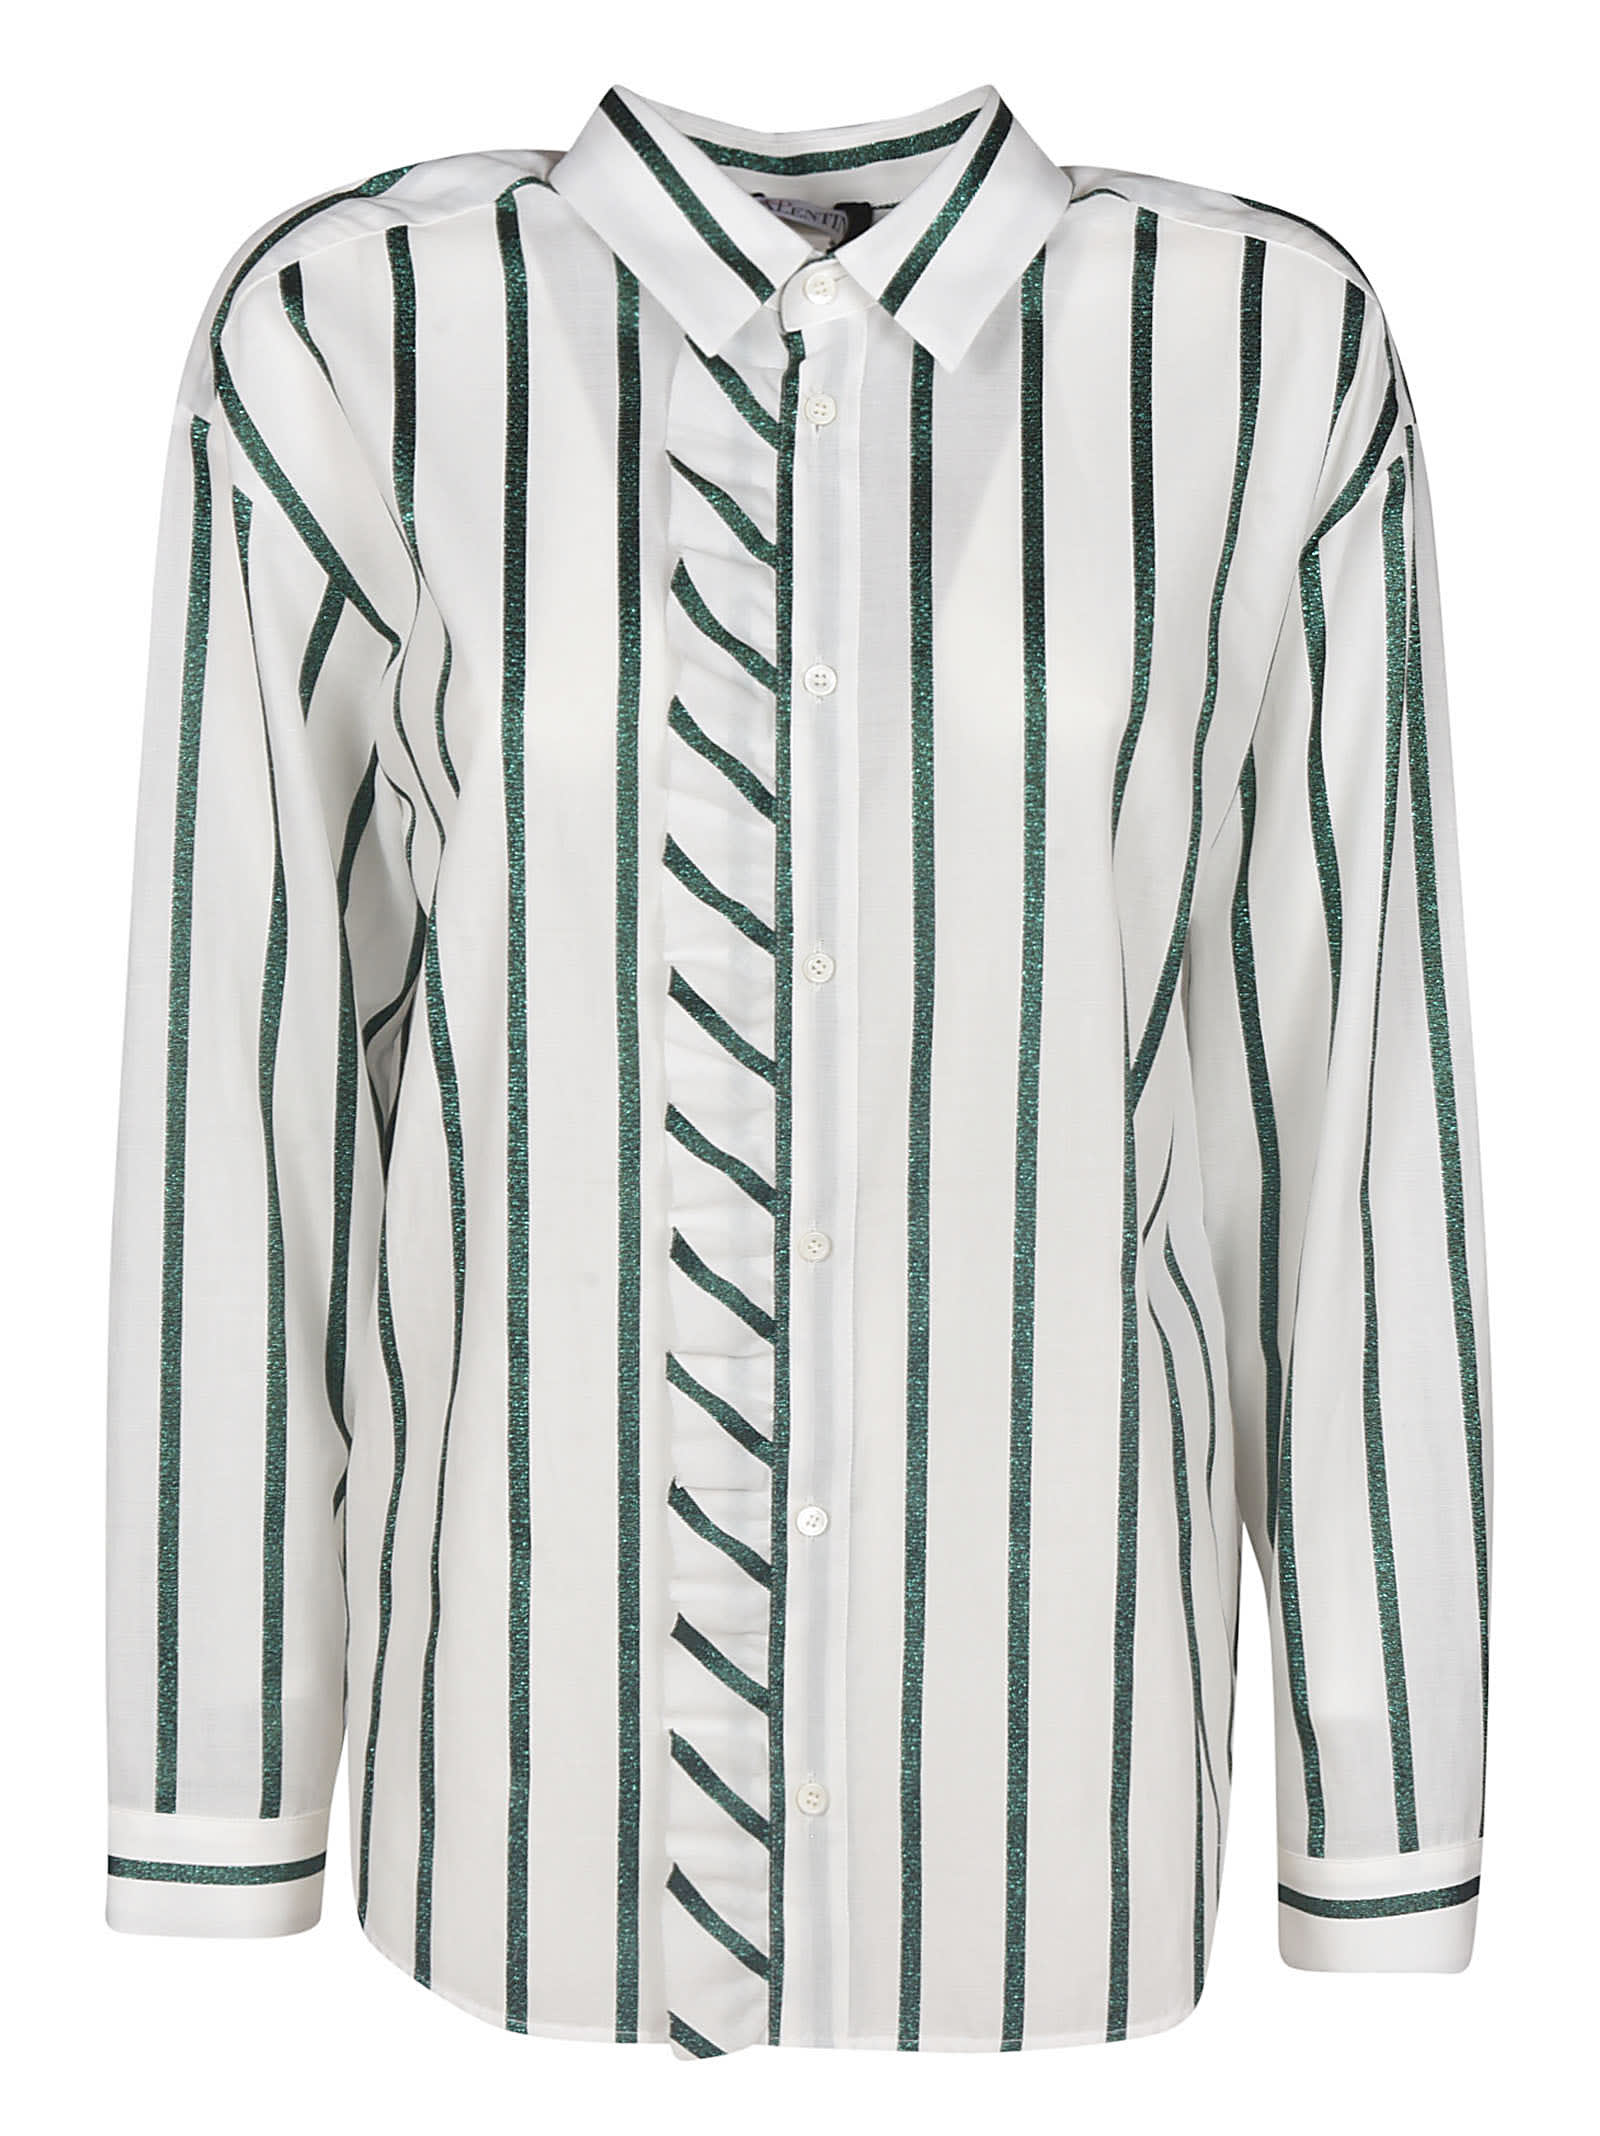 RED Valentino Voile Shirt